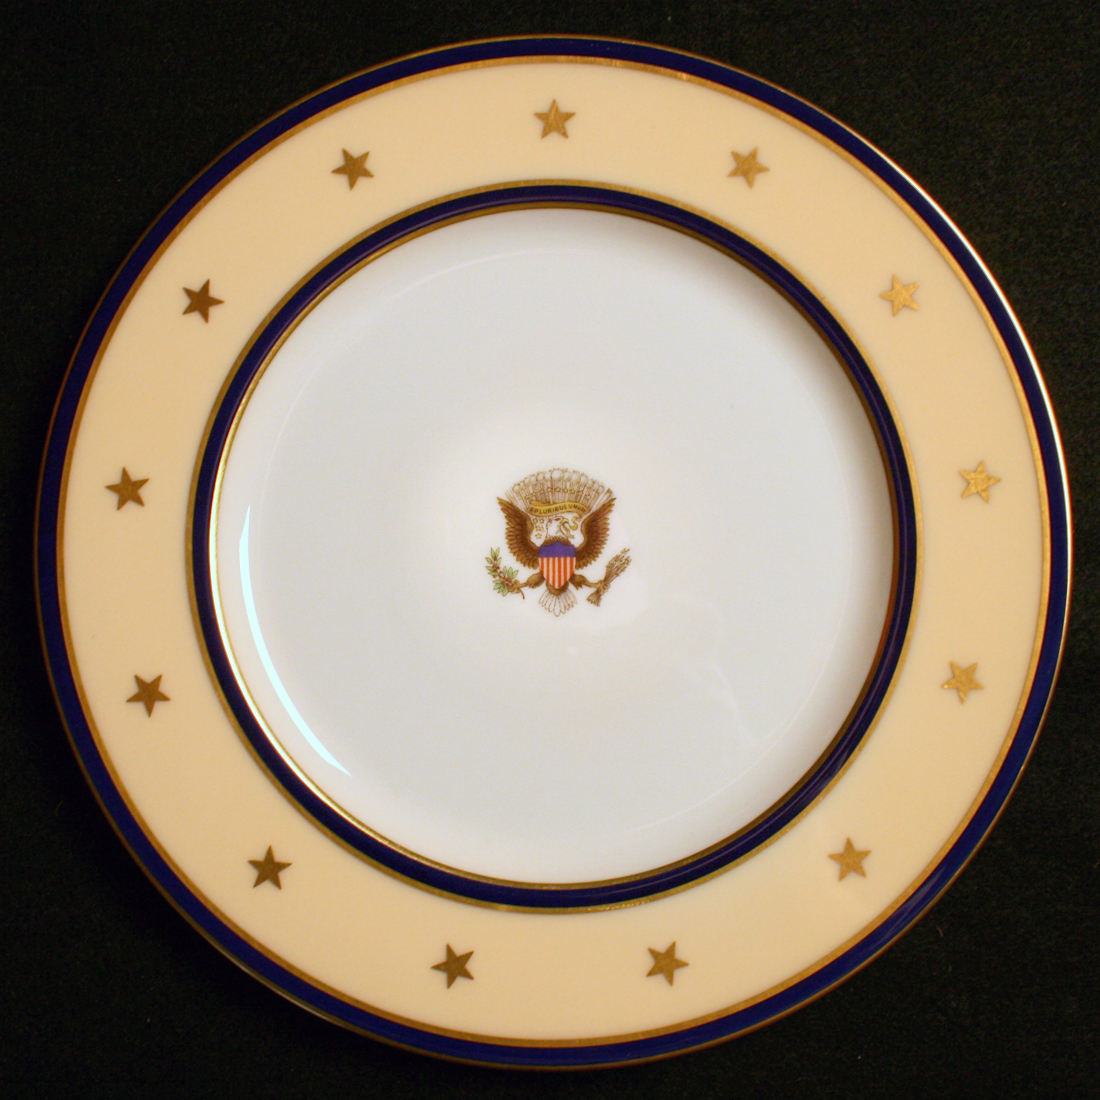 raleigh degeer amyx,franklin d. roosevelt china,official white house china,uss williamsburg,presidential yacht china,